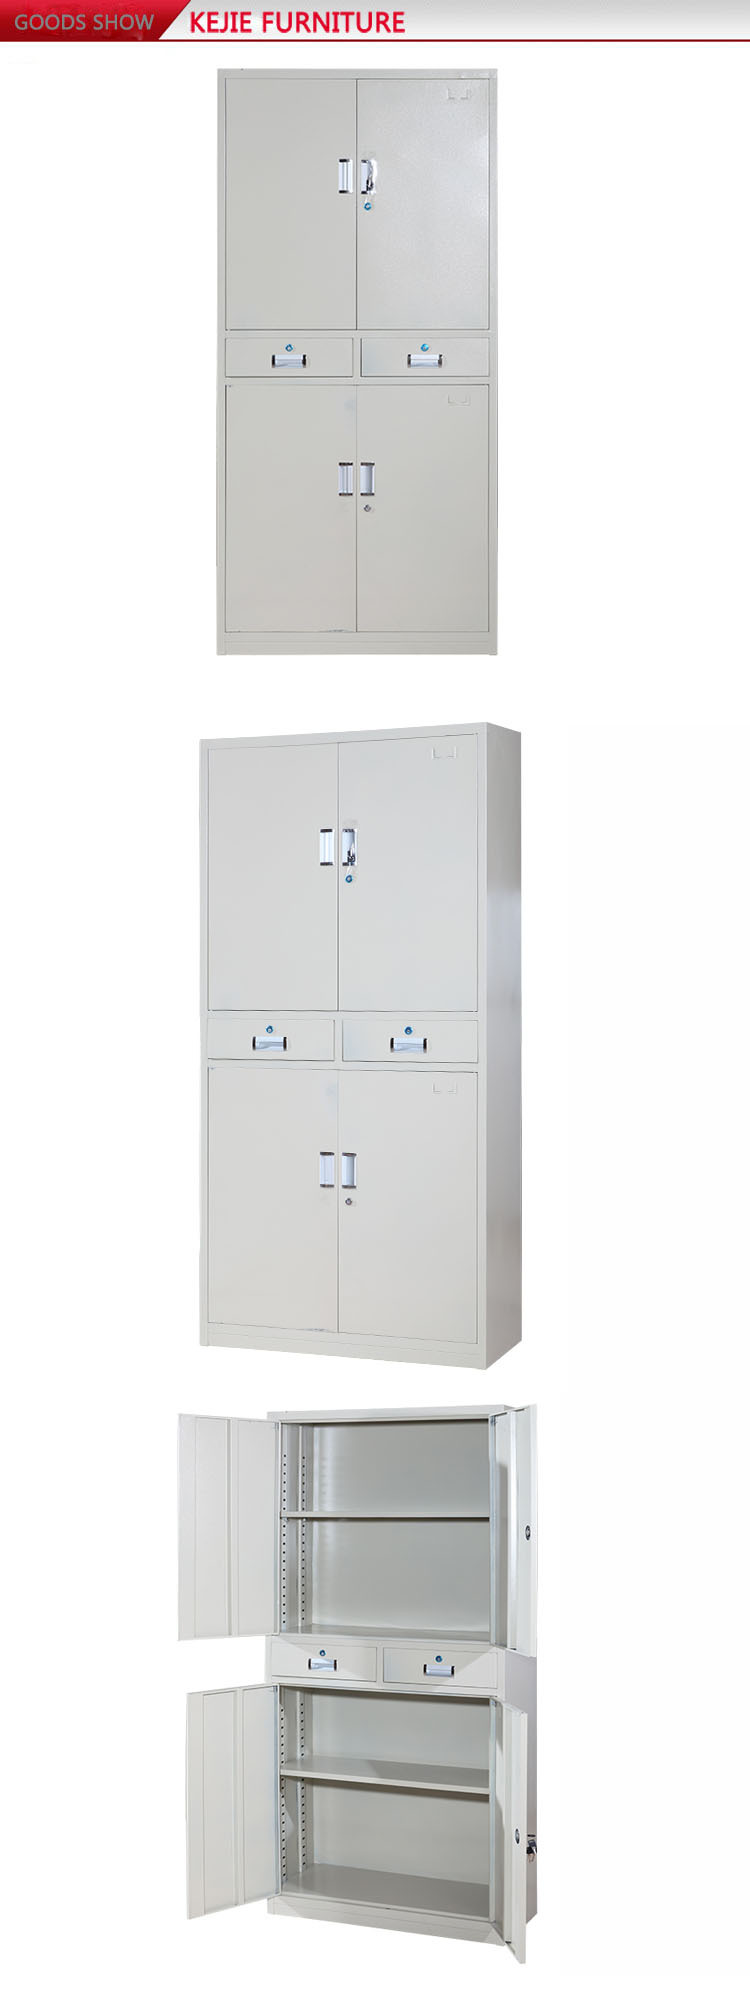 Steel Office Furniture Godrej 4, 3 Drawers Vertical Stainless Steel File  Cabinet Used Metal Filing